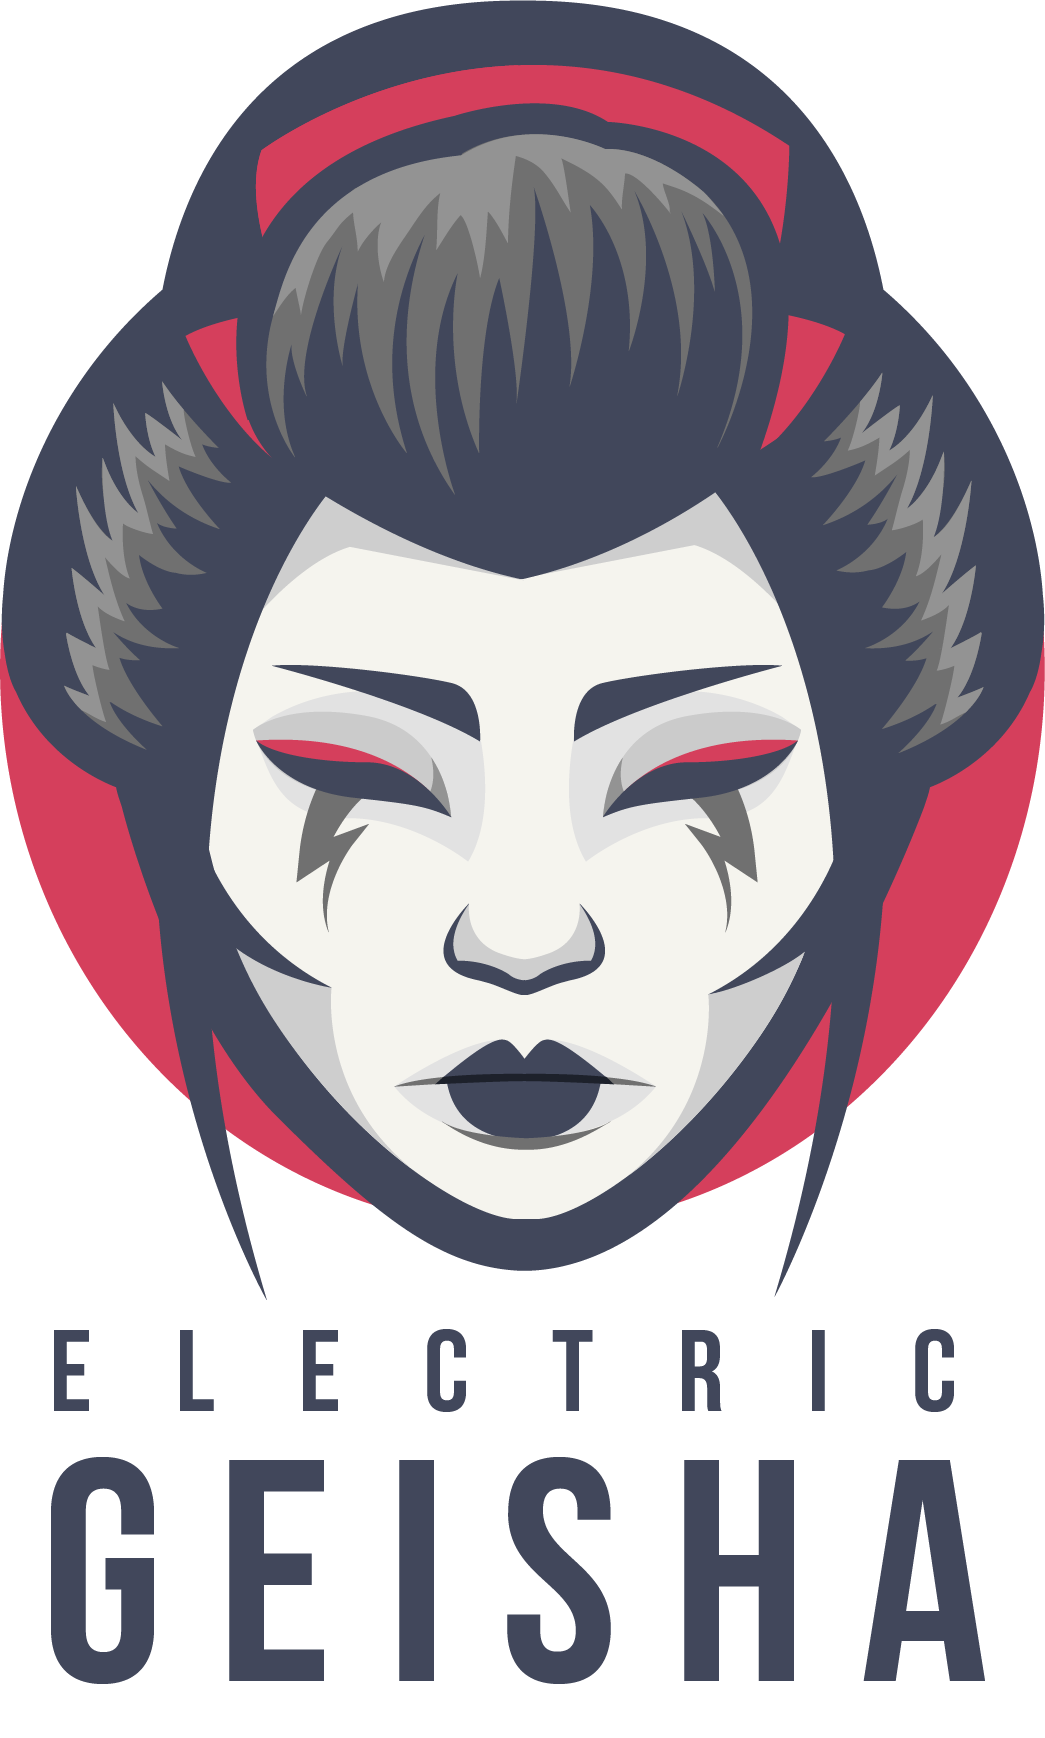 Electric Geisha | Design Studio | Collectibles | Toys | Art | 3D Printing | 3D Assets